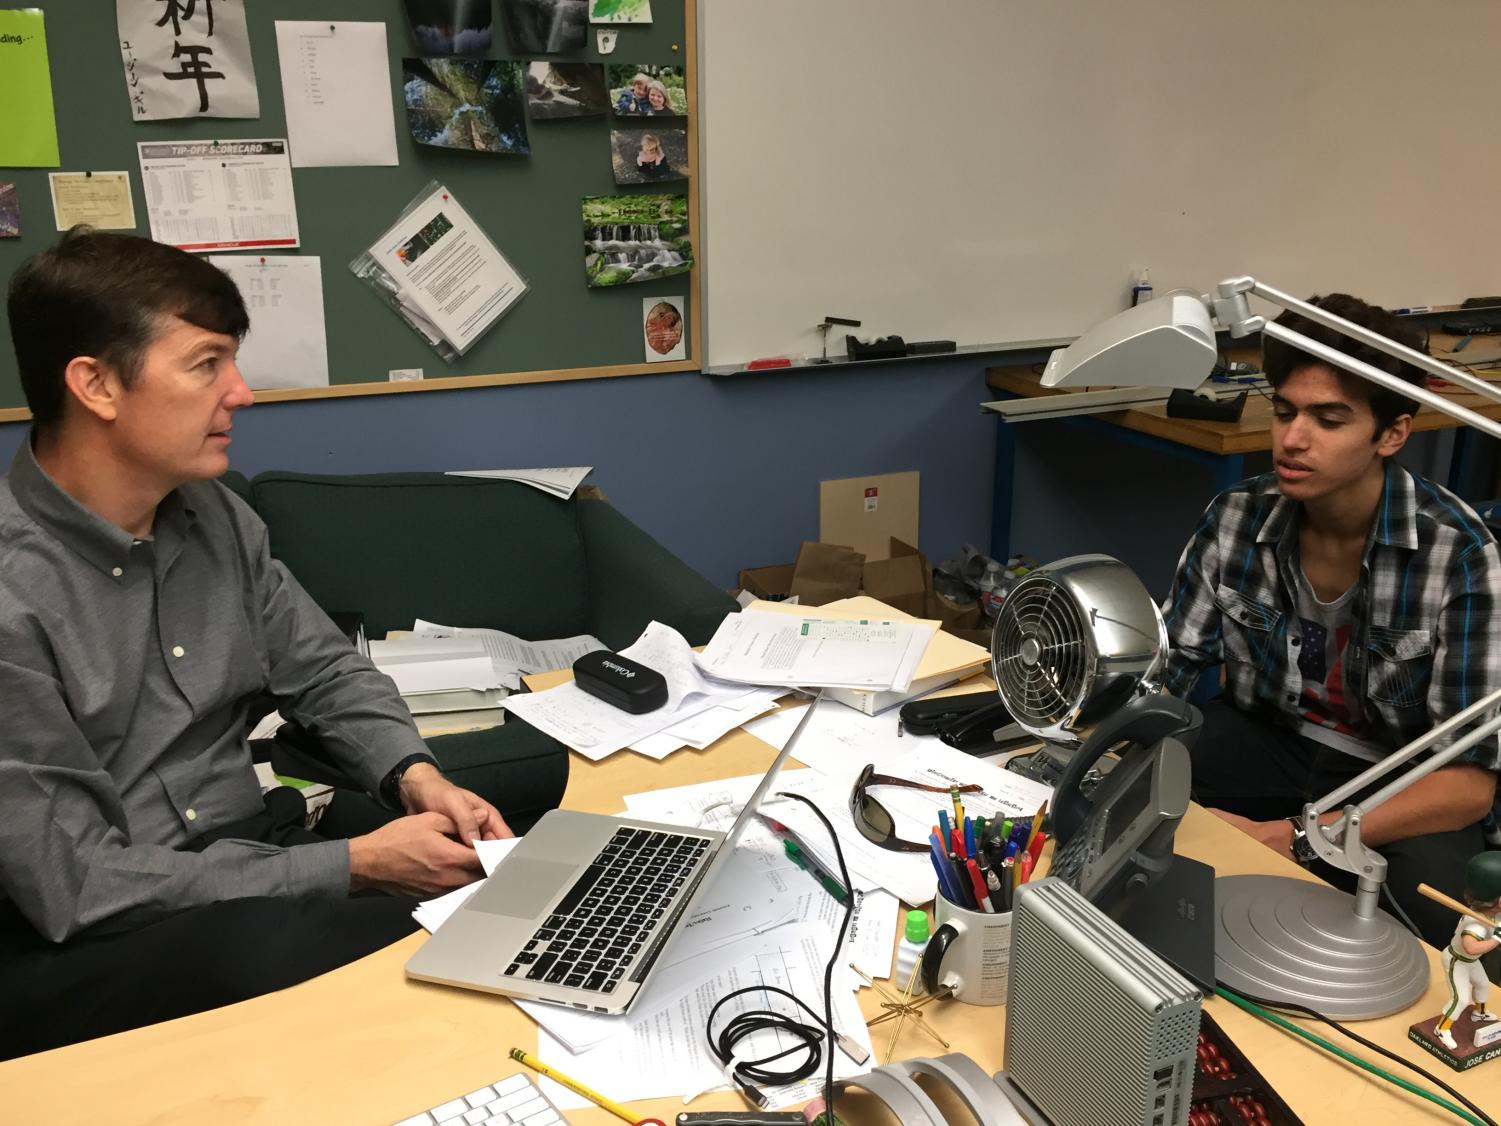 Alex Kumar (9) meets with his advisor Dr. Mark Brada for his one-on-one advisee review session today. Students signed up with their advisors for 10-minute time slots on Monday during advisory.